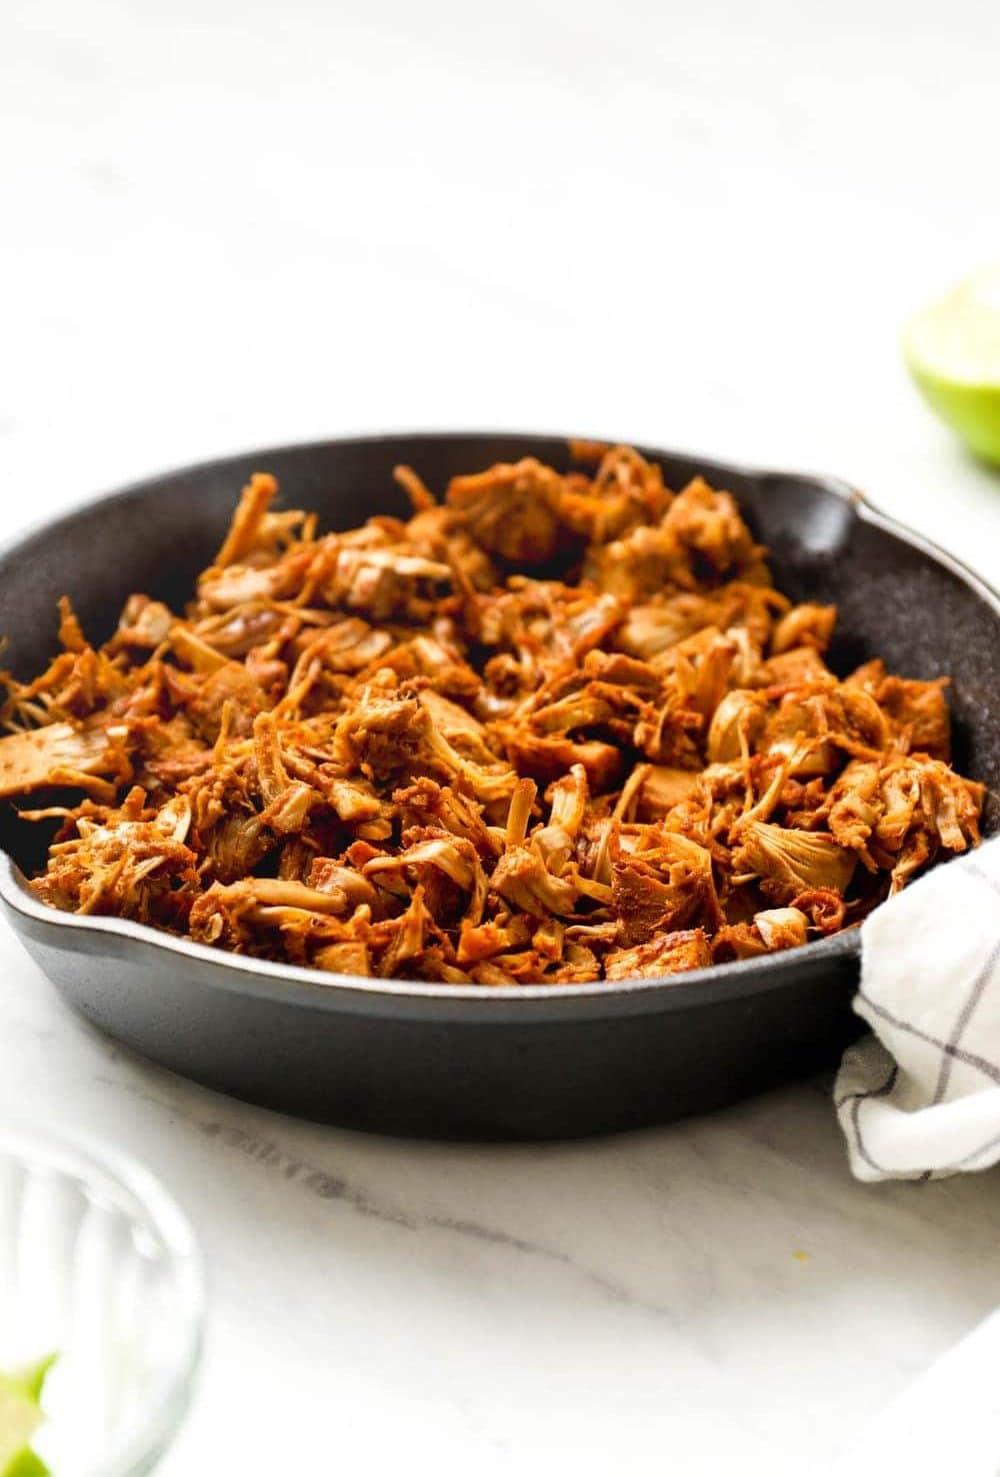 Cooked jackfruit closeup with tortillas and lime.